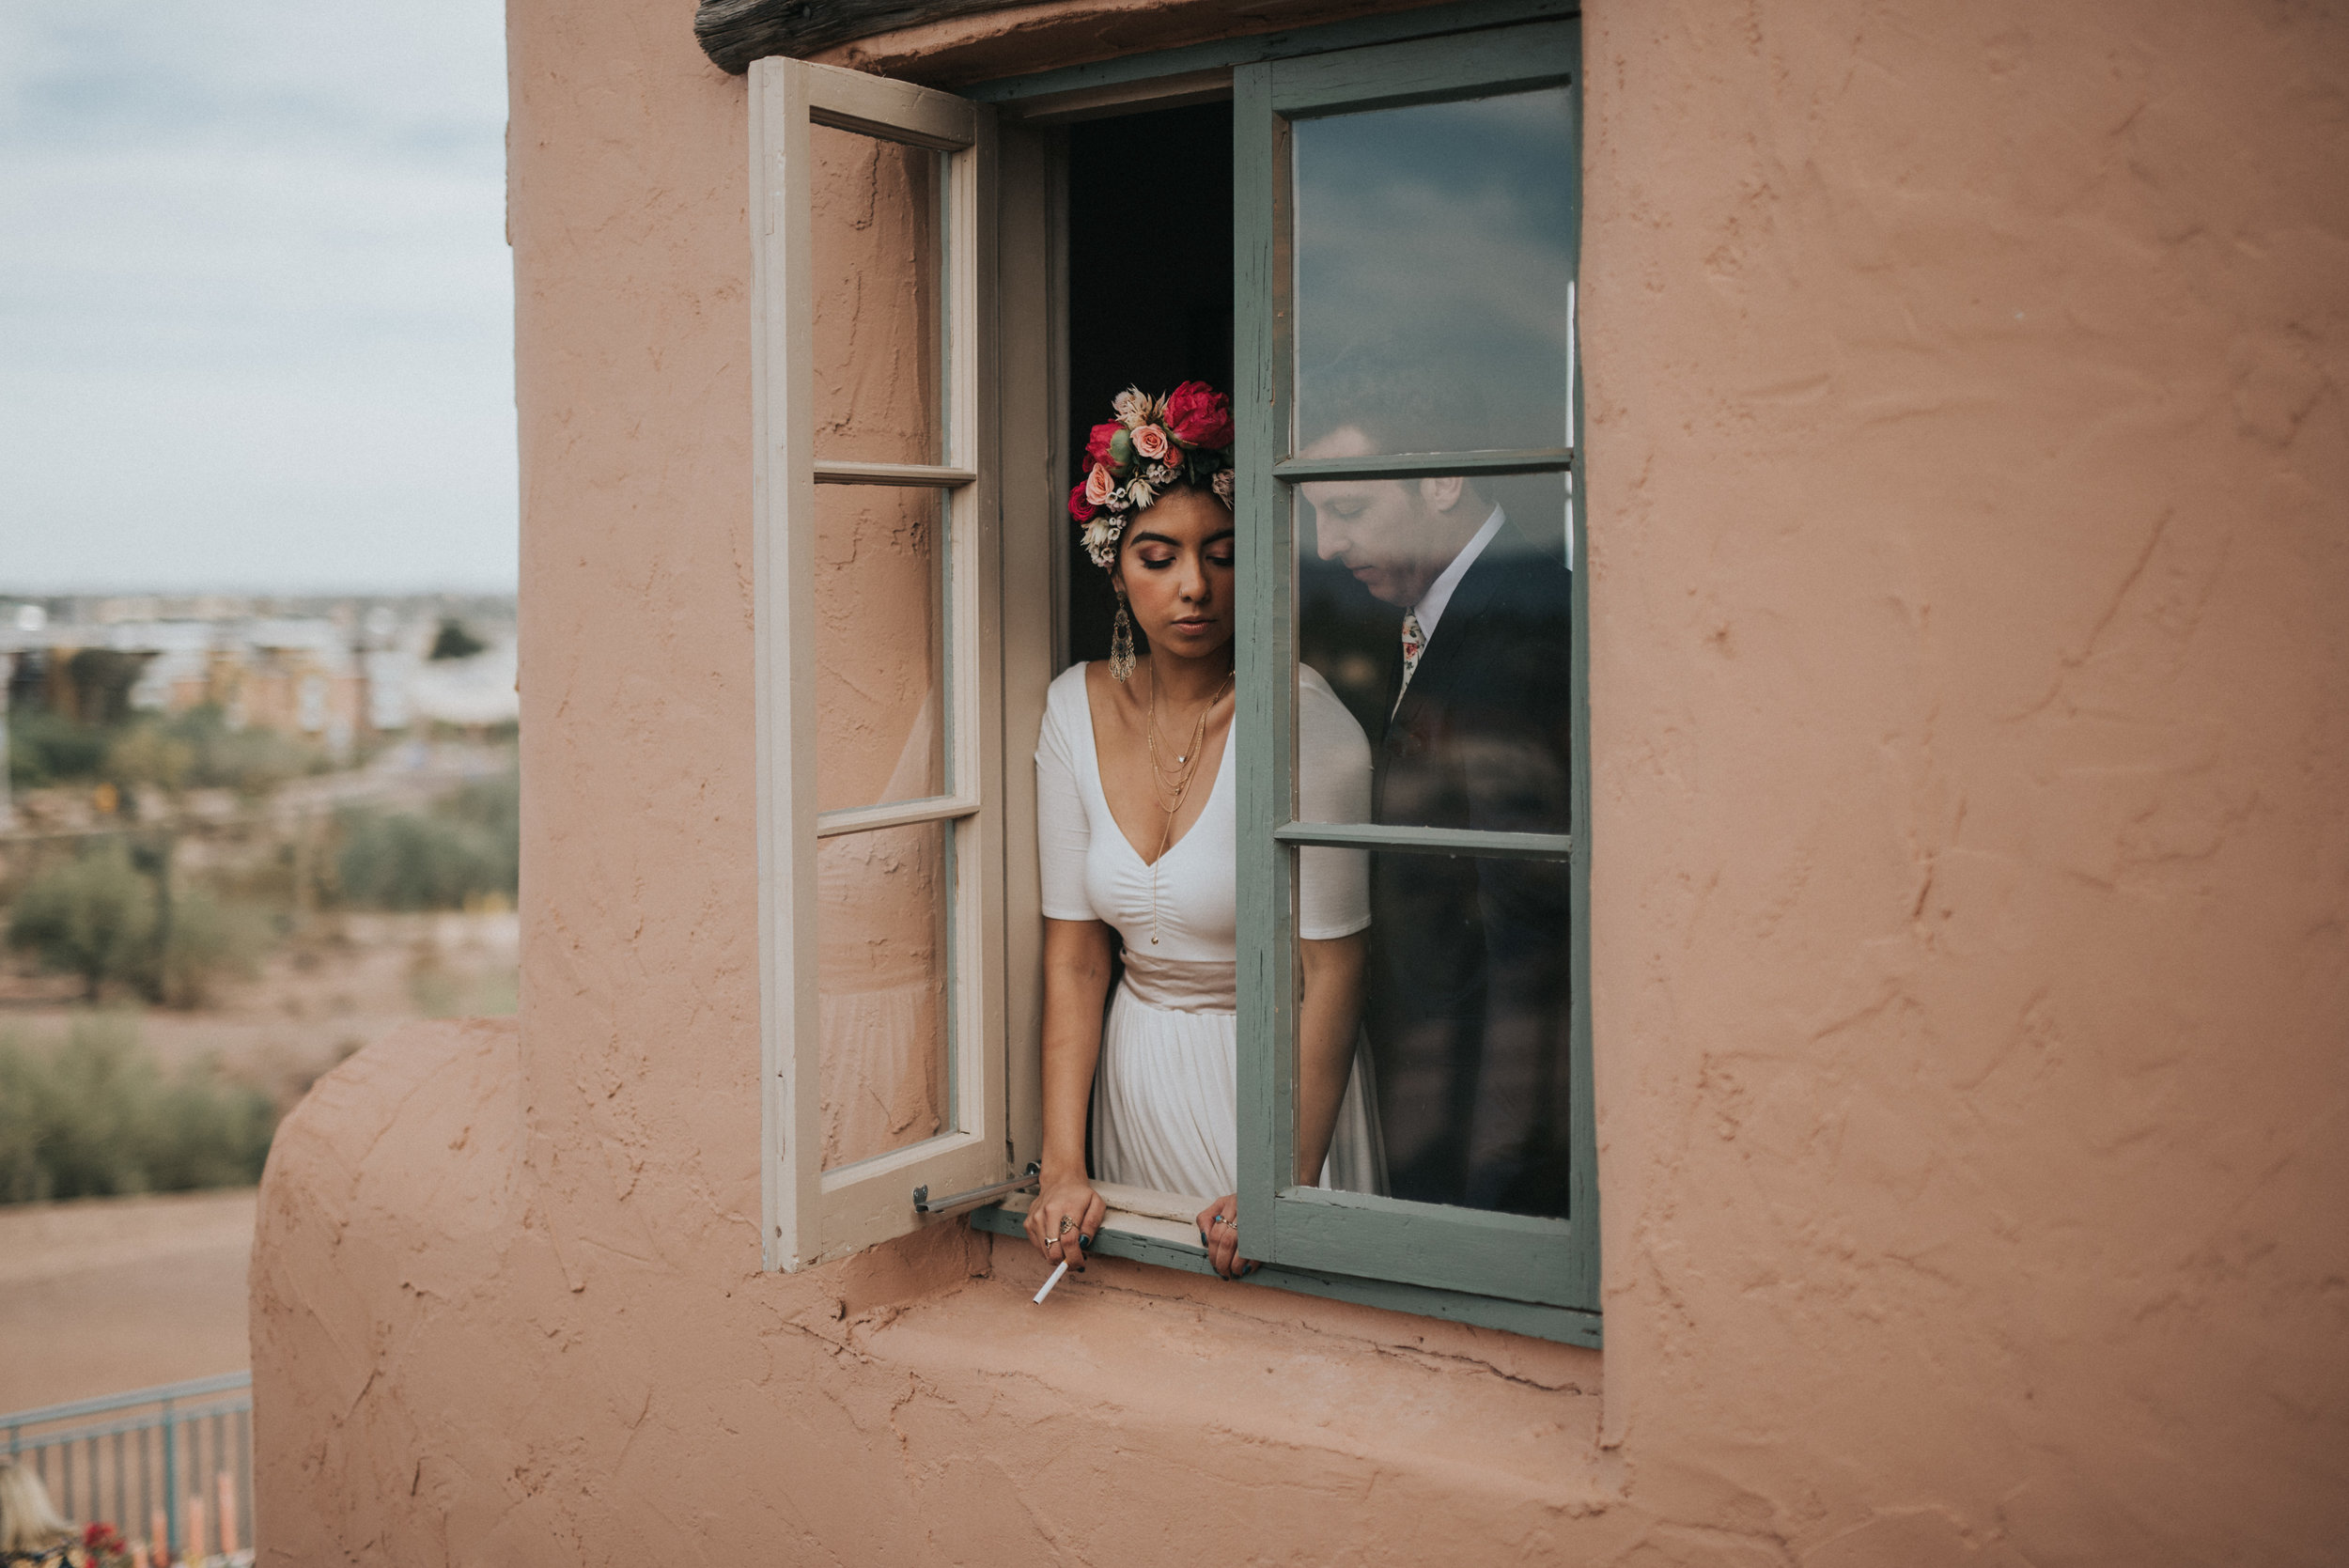 Frida Kahlo Inspired Wedding - Bride and Groom Style